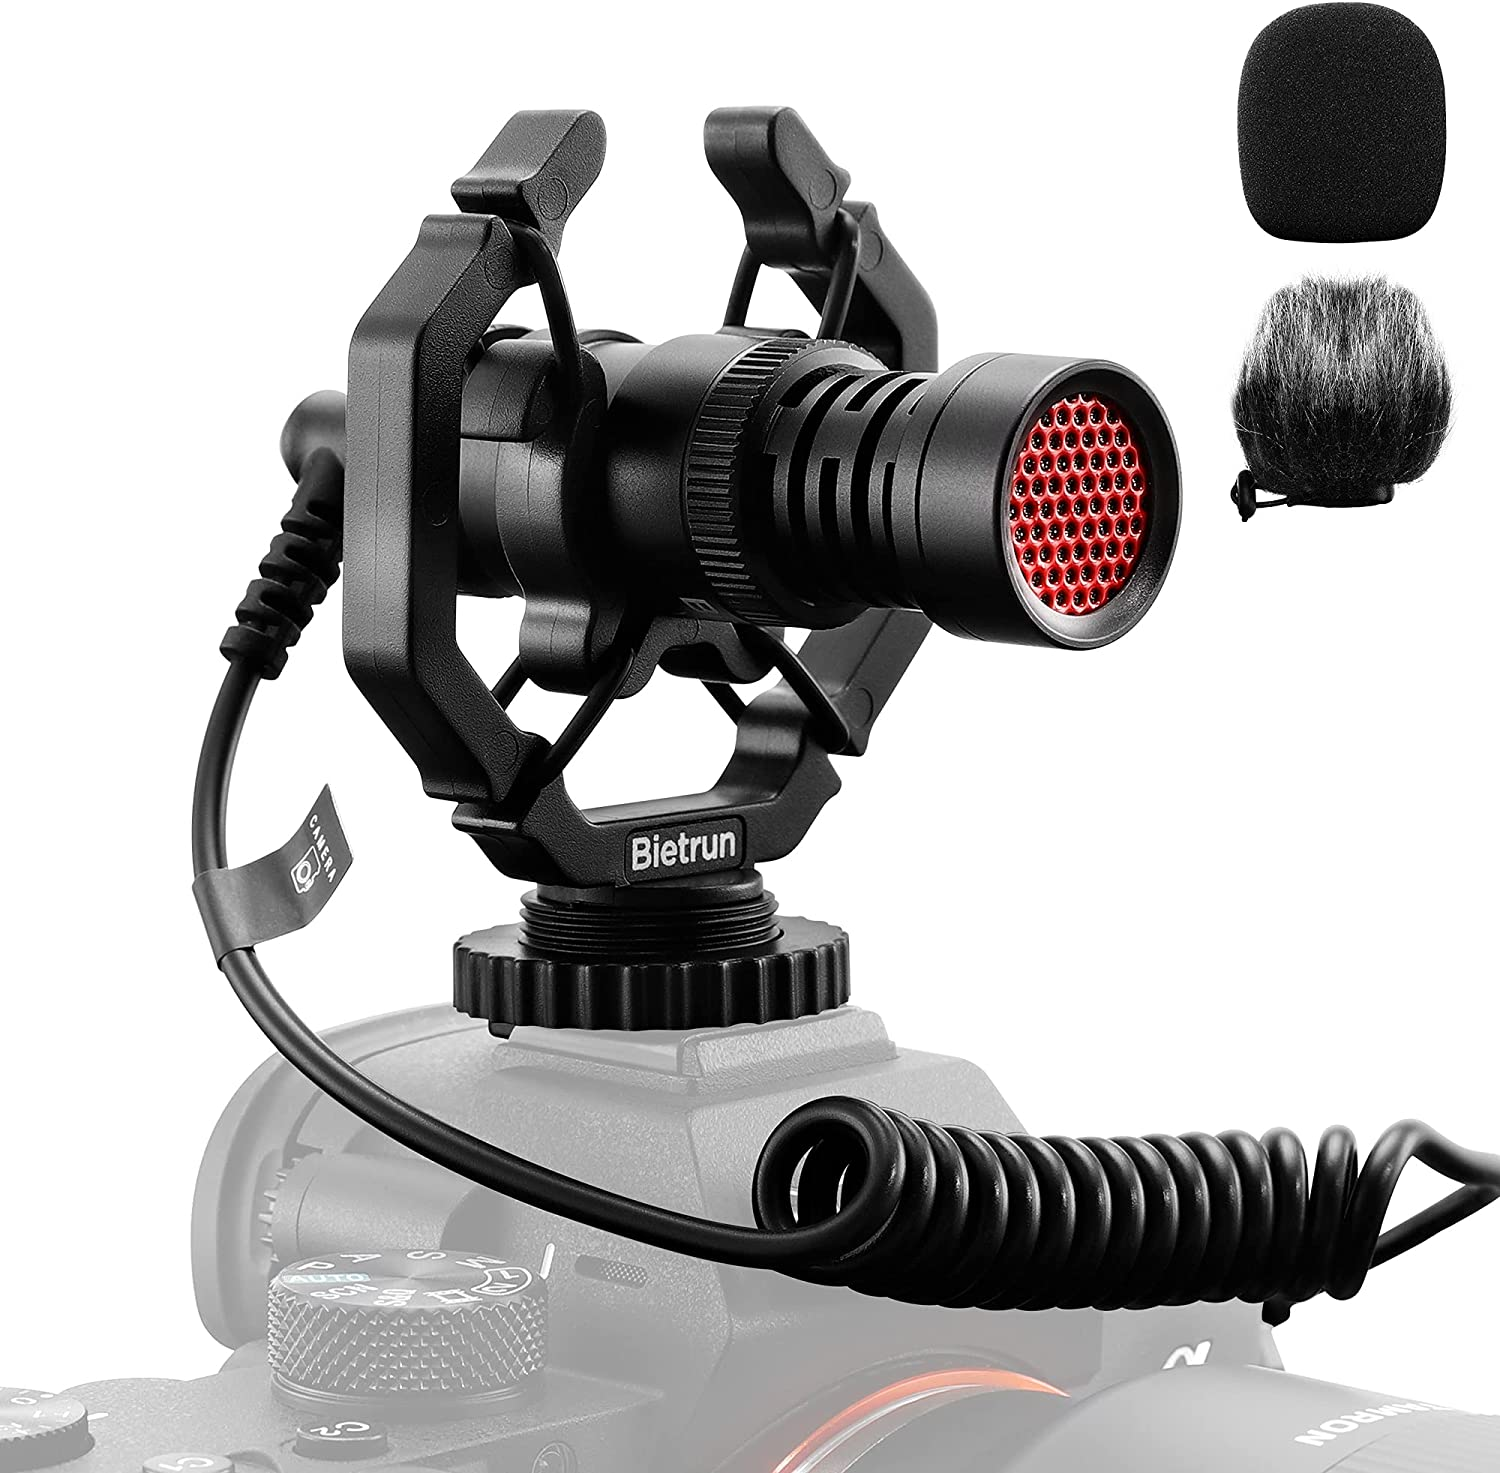 Bietrun 3.5mm TRS cable Camera Microphone $13.49 Coupon